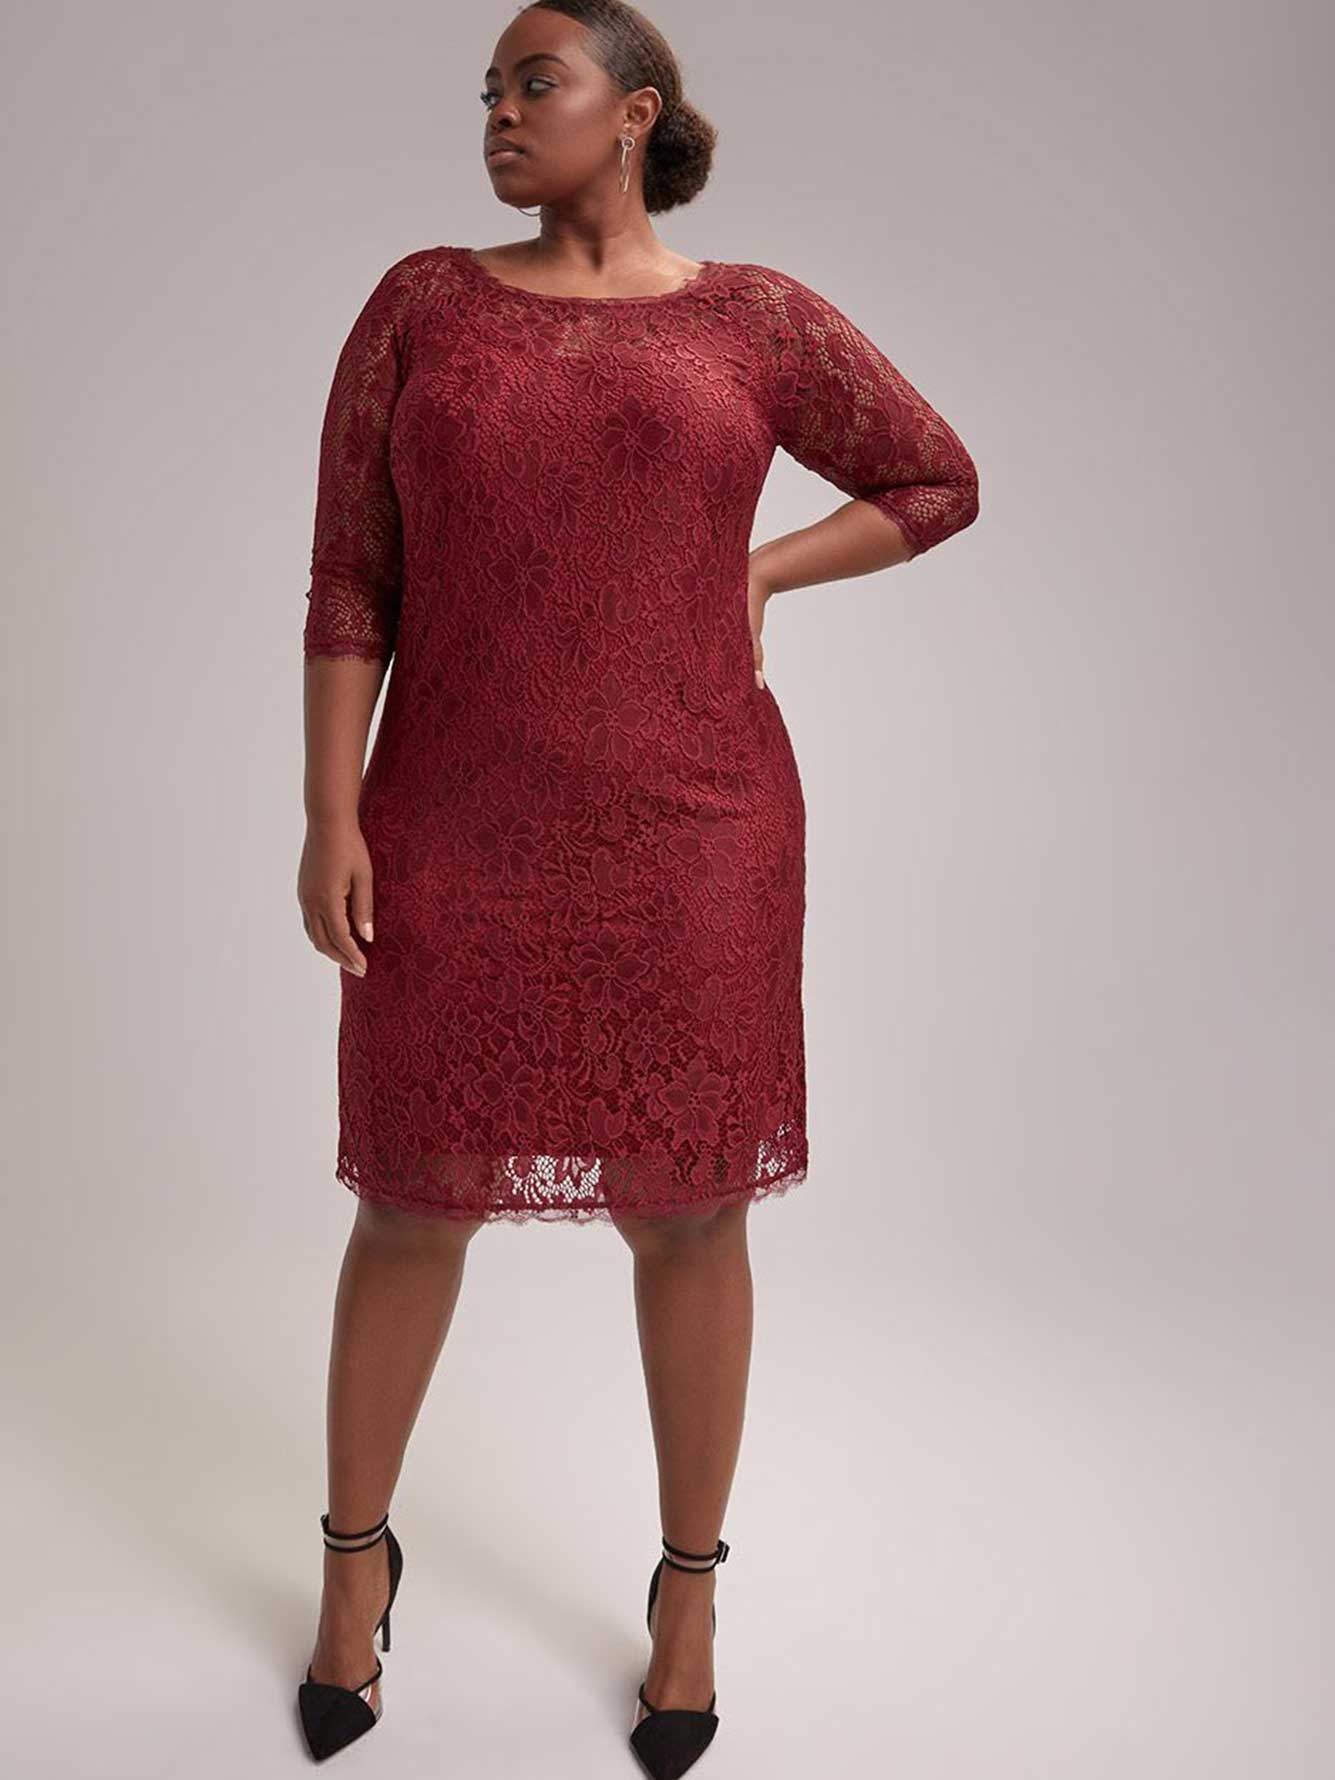 3/4 Sleeve Shift Lace Dress - In Every Story